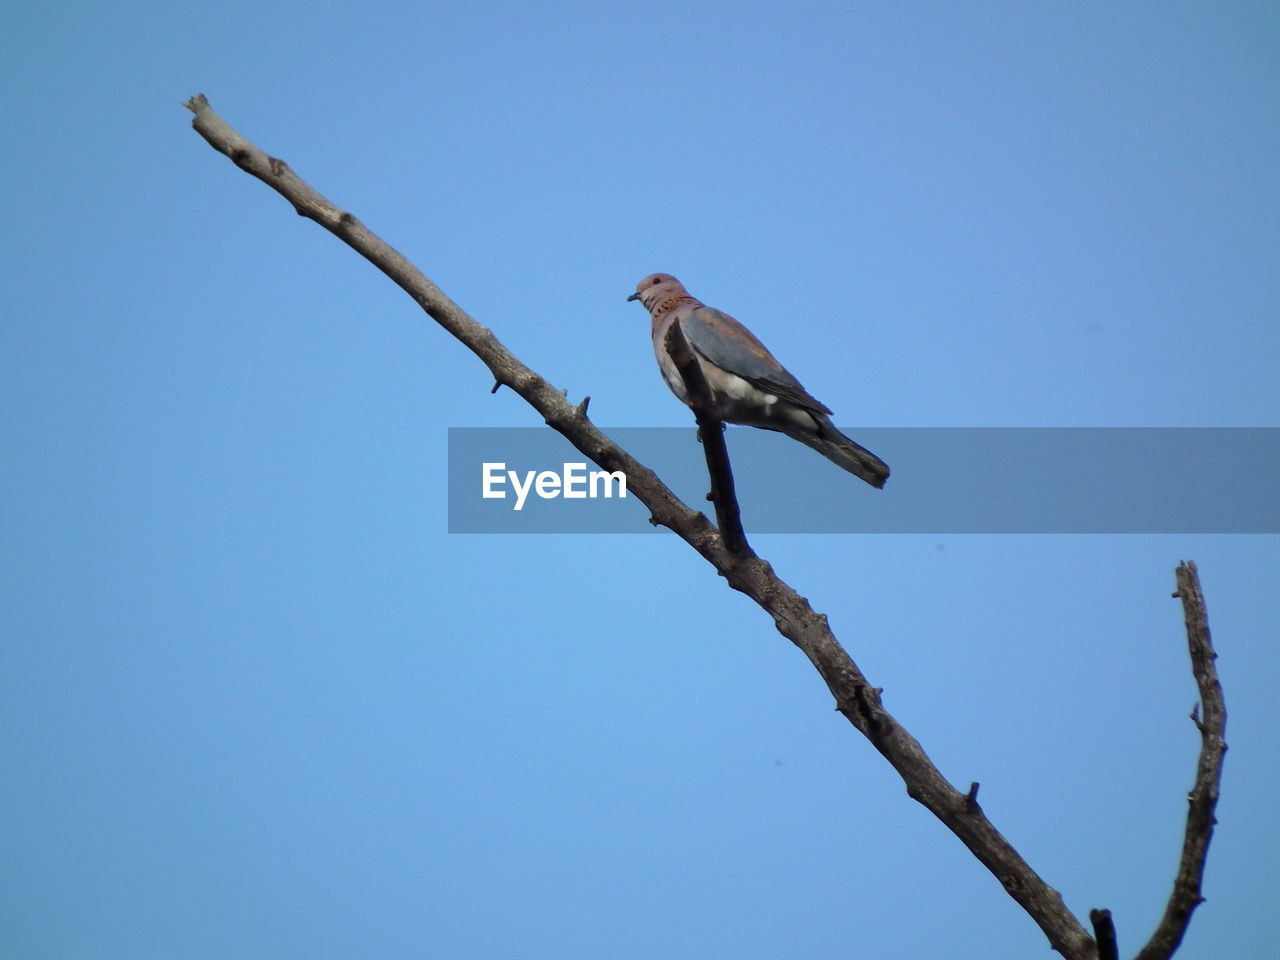 bird, animals in the wild, animal, animal themes, vertebrate, animal wildlife, low angle view, perching, one animal, clear sky, branch, sky, tree, blue, plant, copy space, day, no people, nature, outdoors